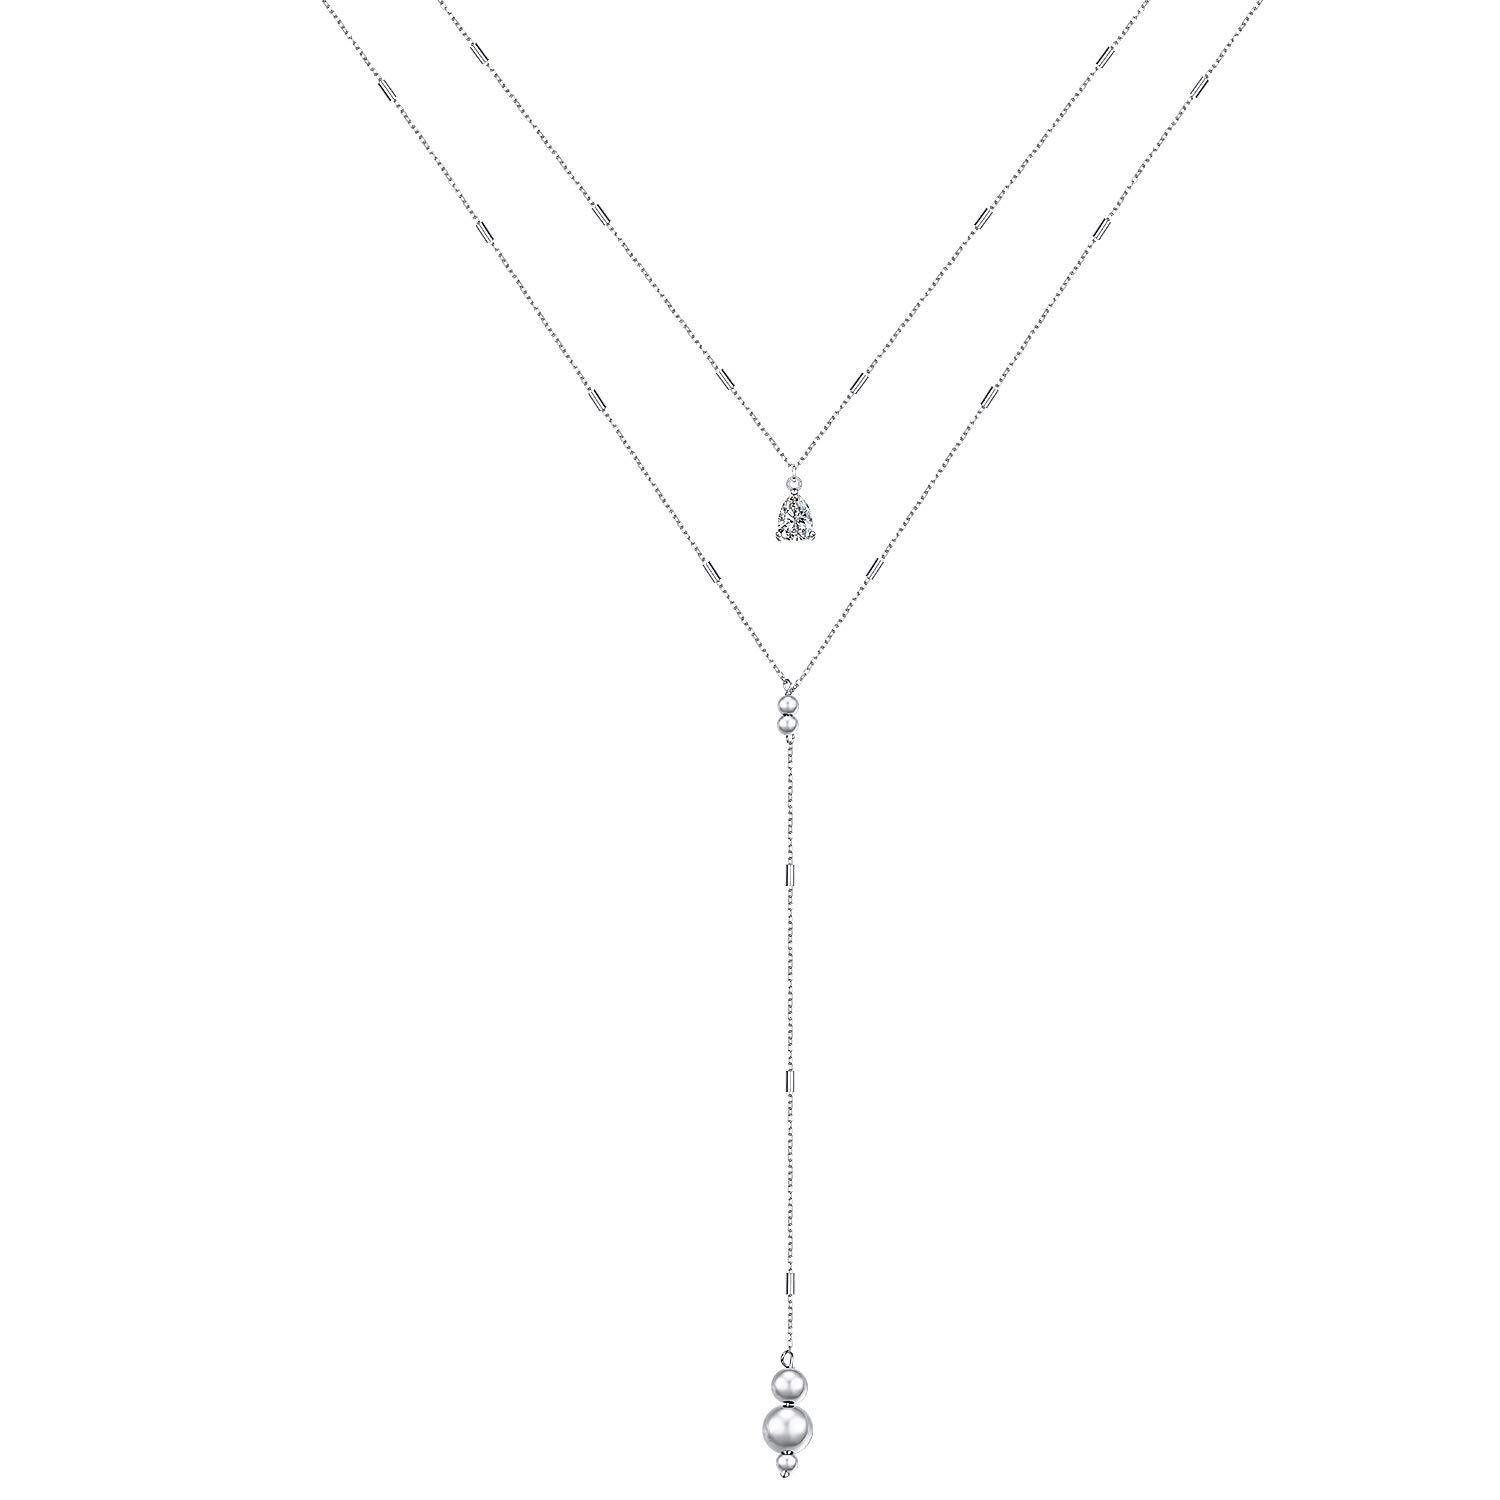 Flyow Multi Layer Choker Necklace S925 Sterling Silver Y Lariat Necklace for Women Long Chain by Flyow